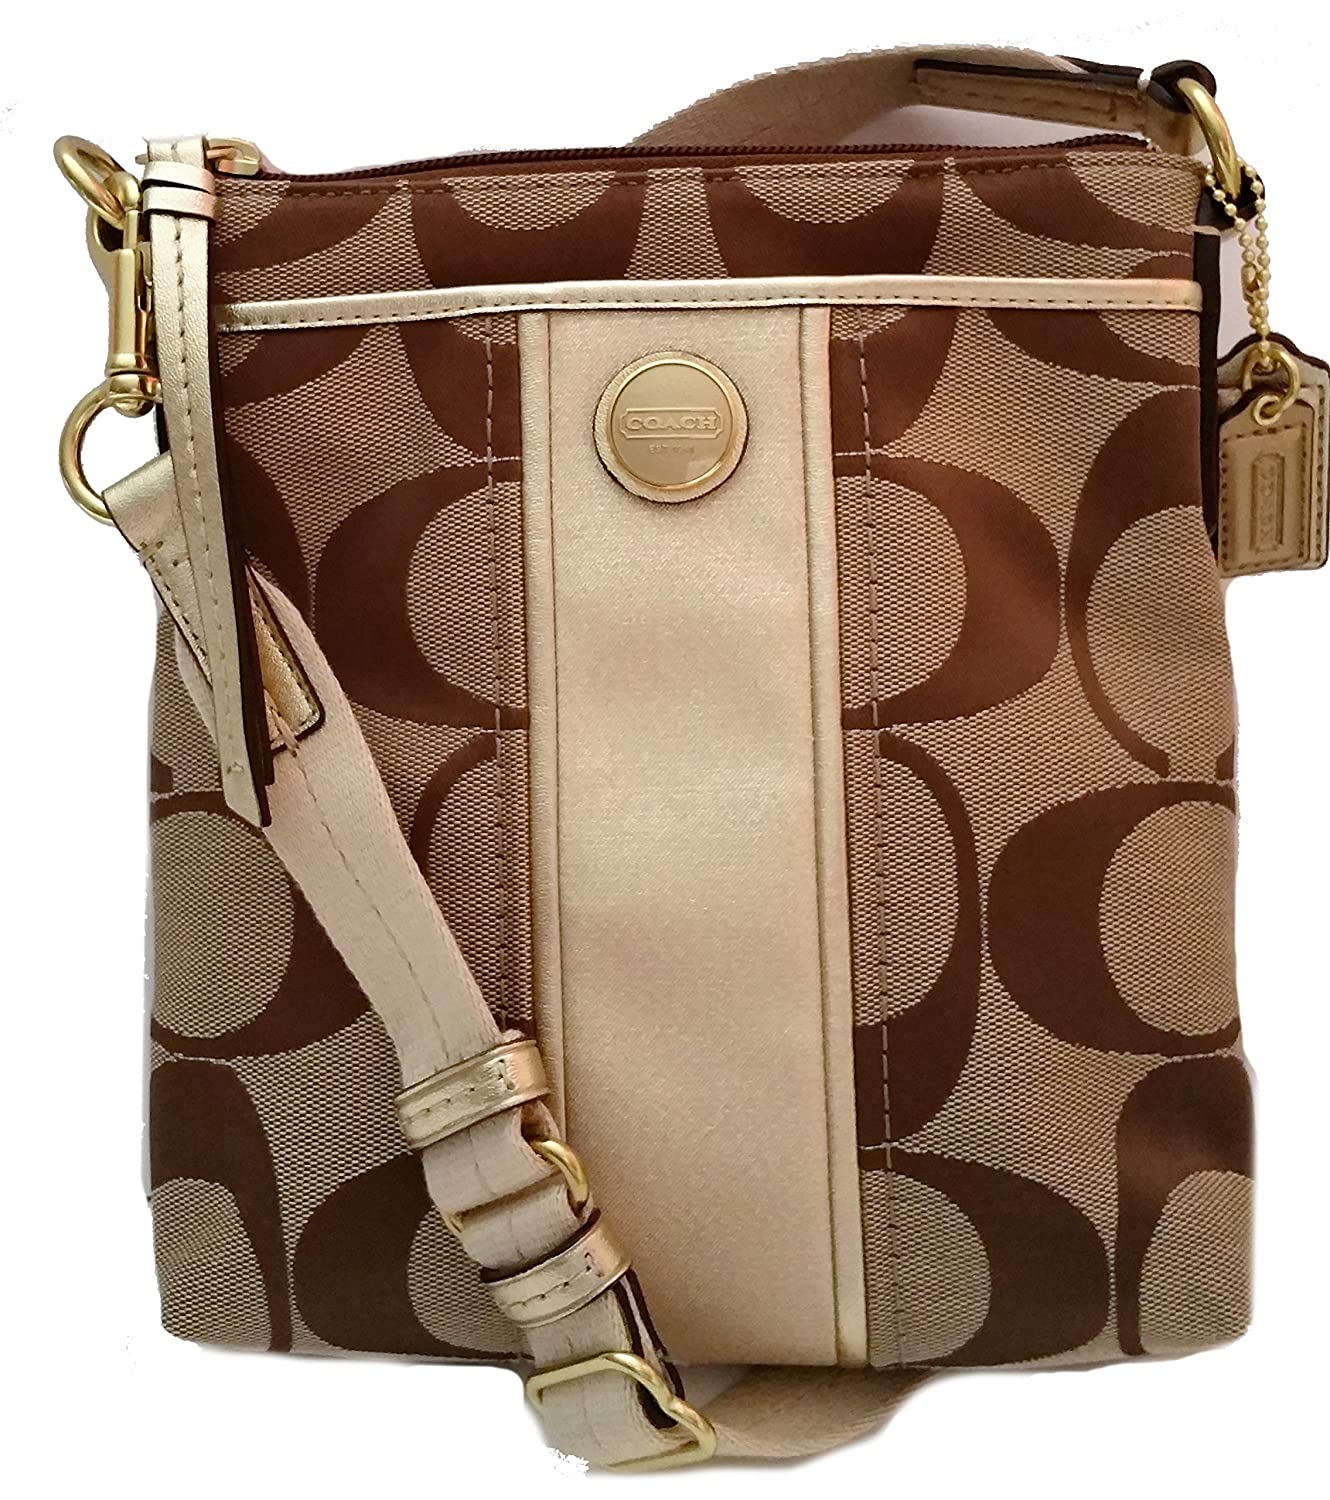 afb4c114aa ... new zealand coach signature stripe swingpack f48806 khaki gold handbags  amazon ef505 c9203